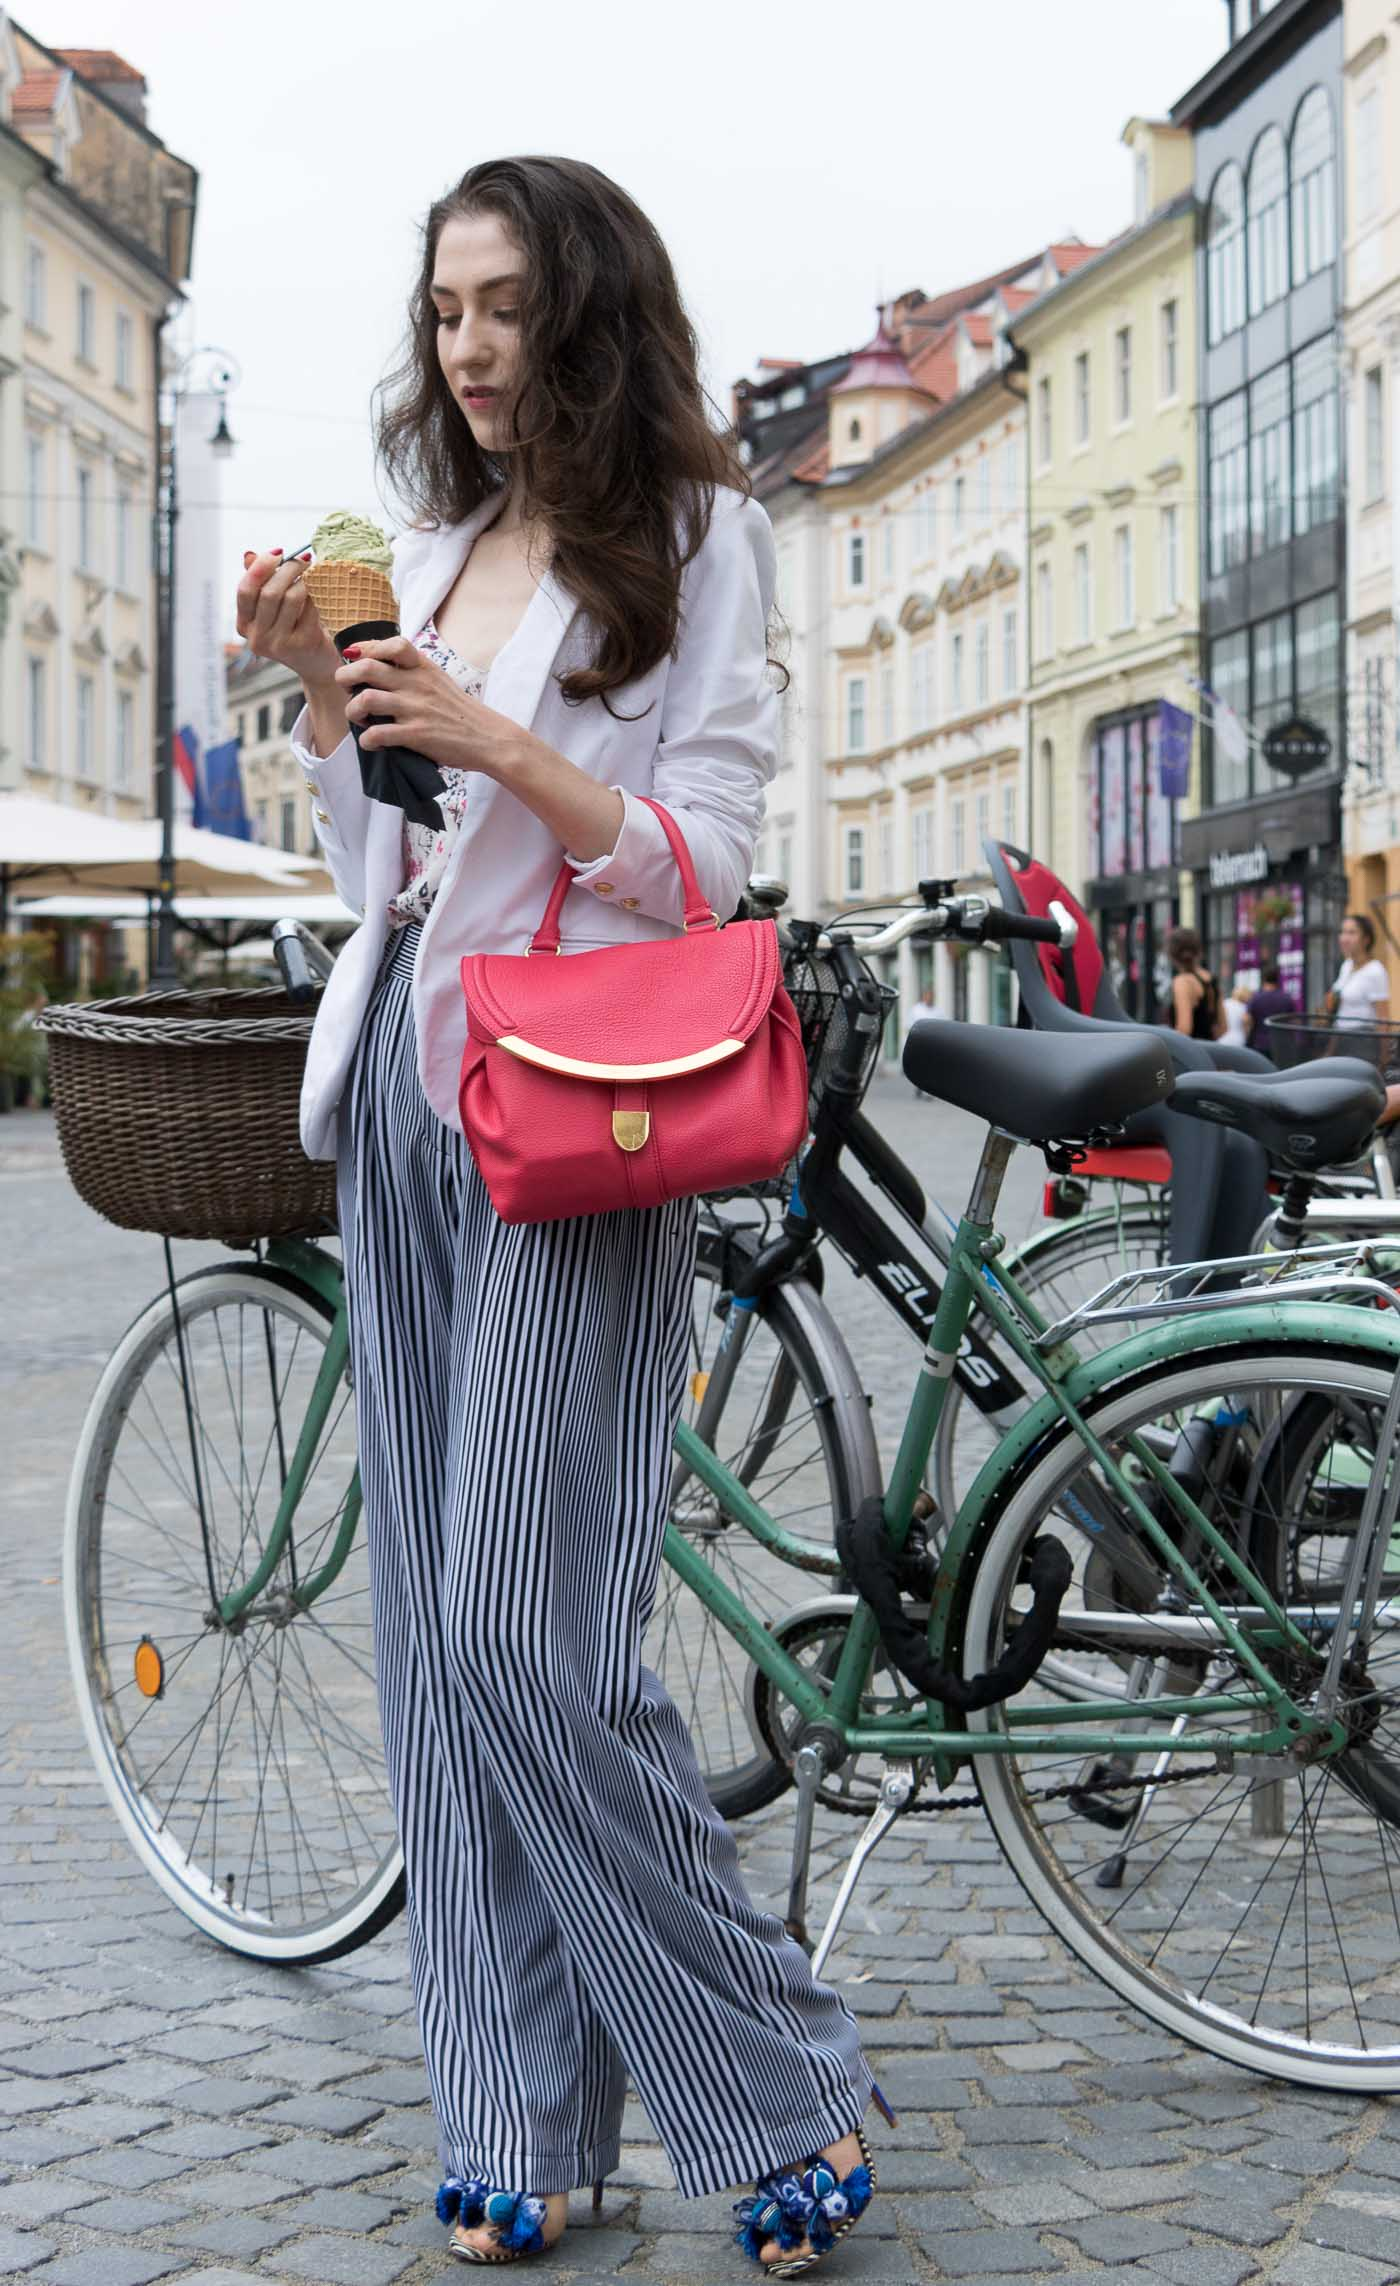 Fashion Blogger Veronika Lipar of Brunette from Wall Street eating pistachio ice cream on the street dressed in wide-leg Michael Kors pants with stripes, white blazer, floral slip top from Stella McCartney and blue Aquazzura sandals